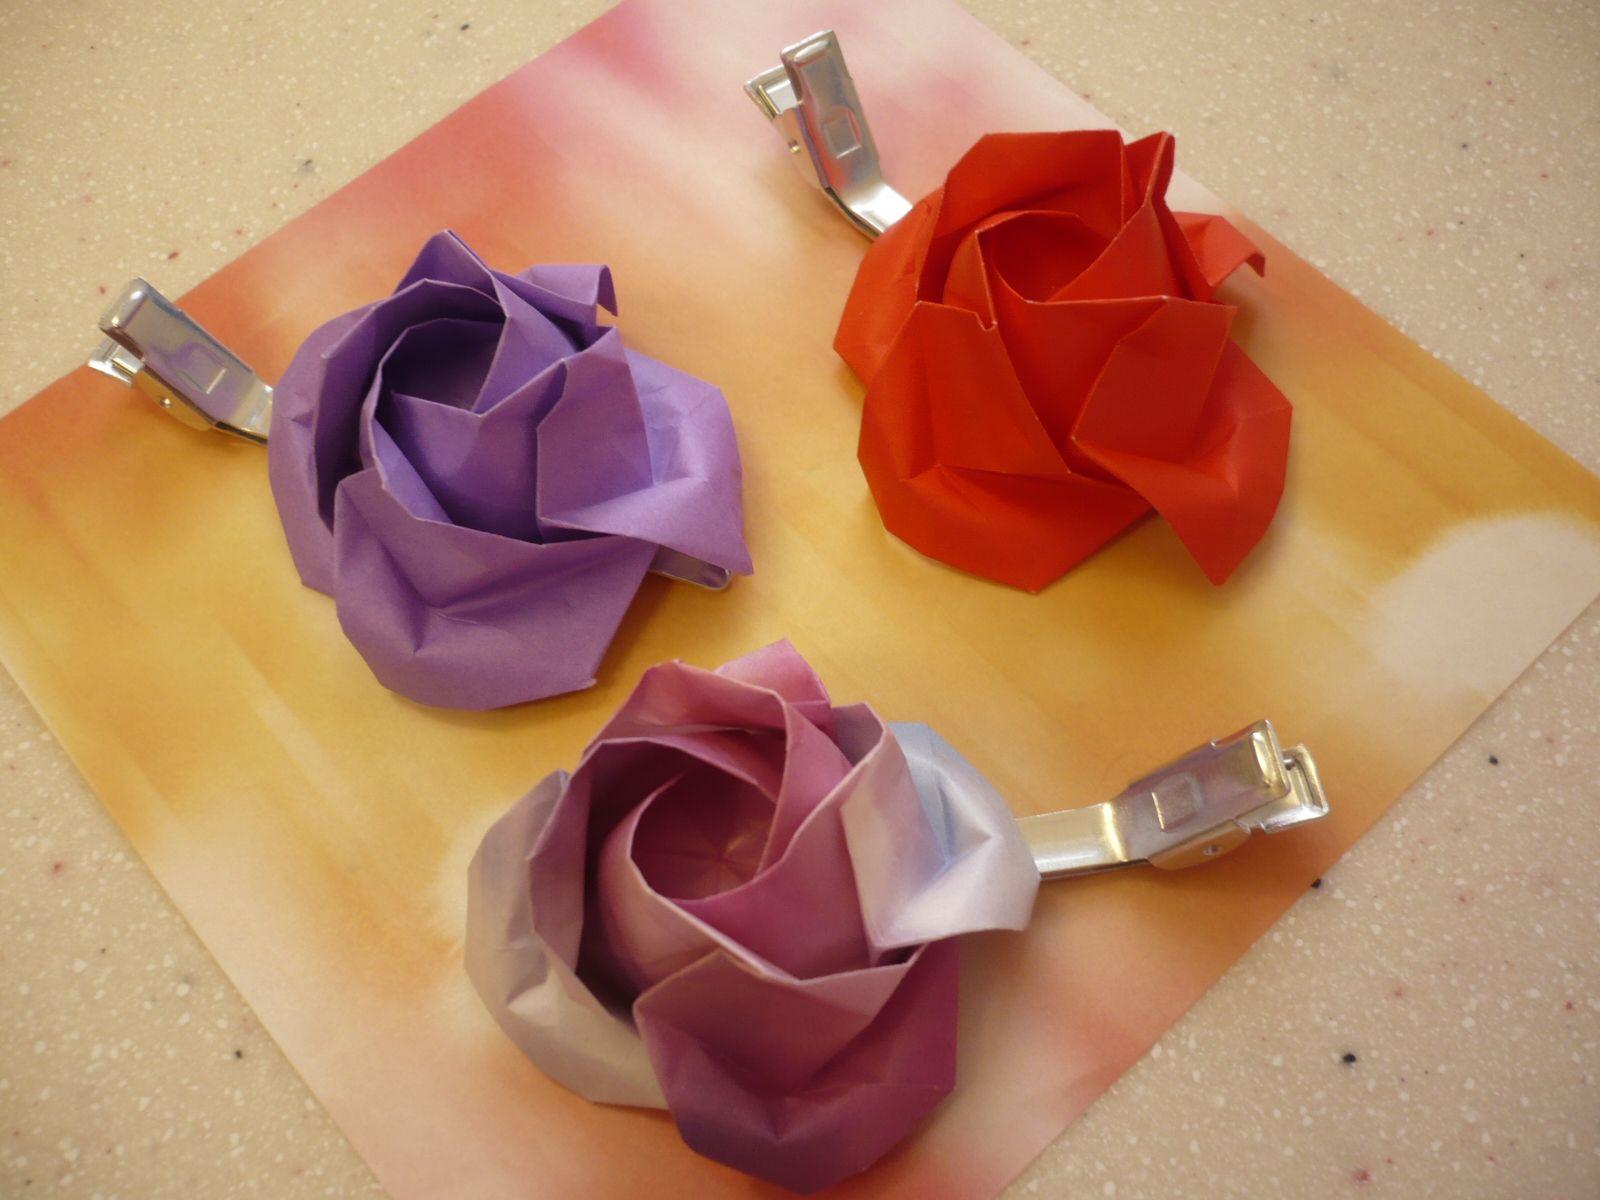 P1100012 Crafts Pinterest Origami Rose Origami And Papercraft